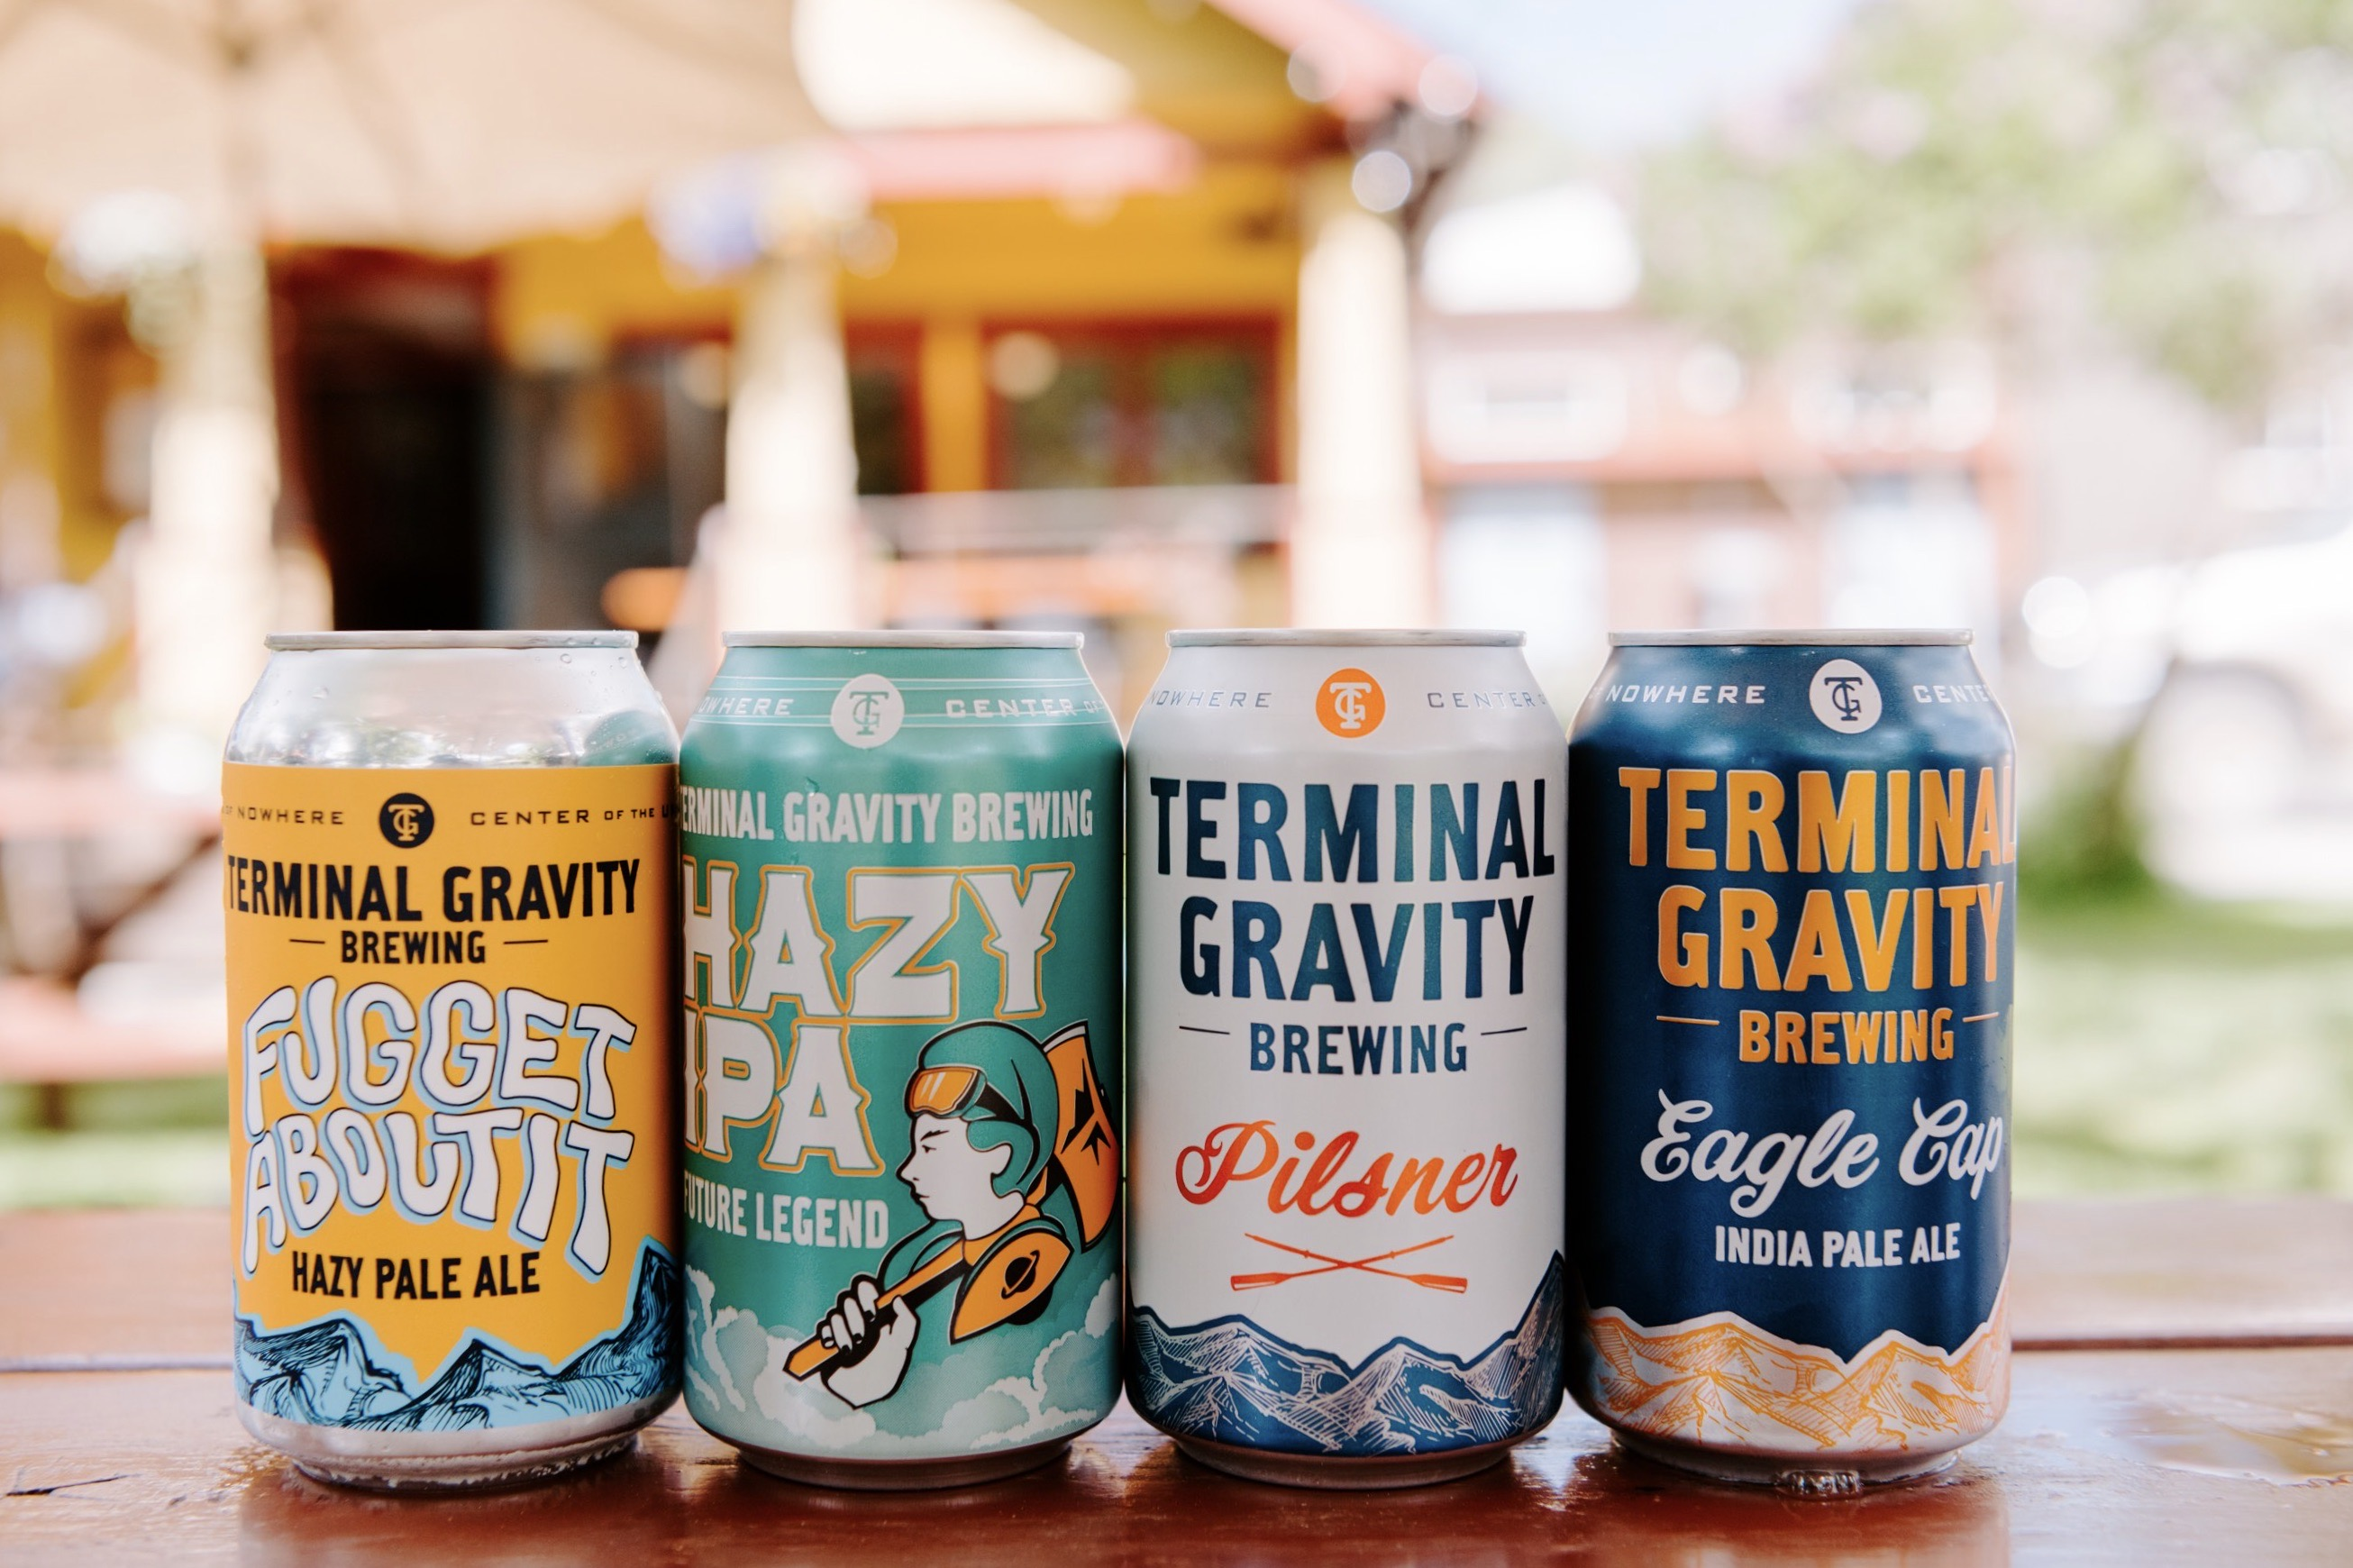 image courtesy of Terminal Gravity Brewing